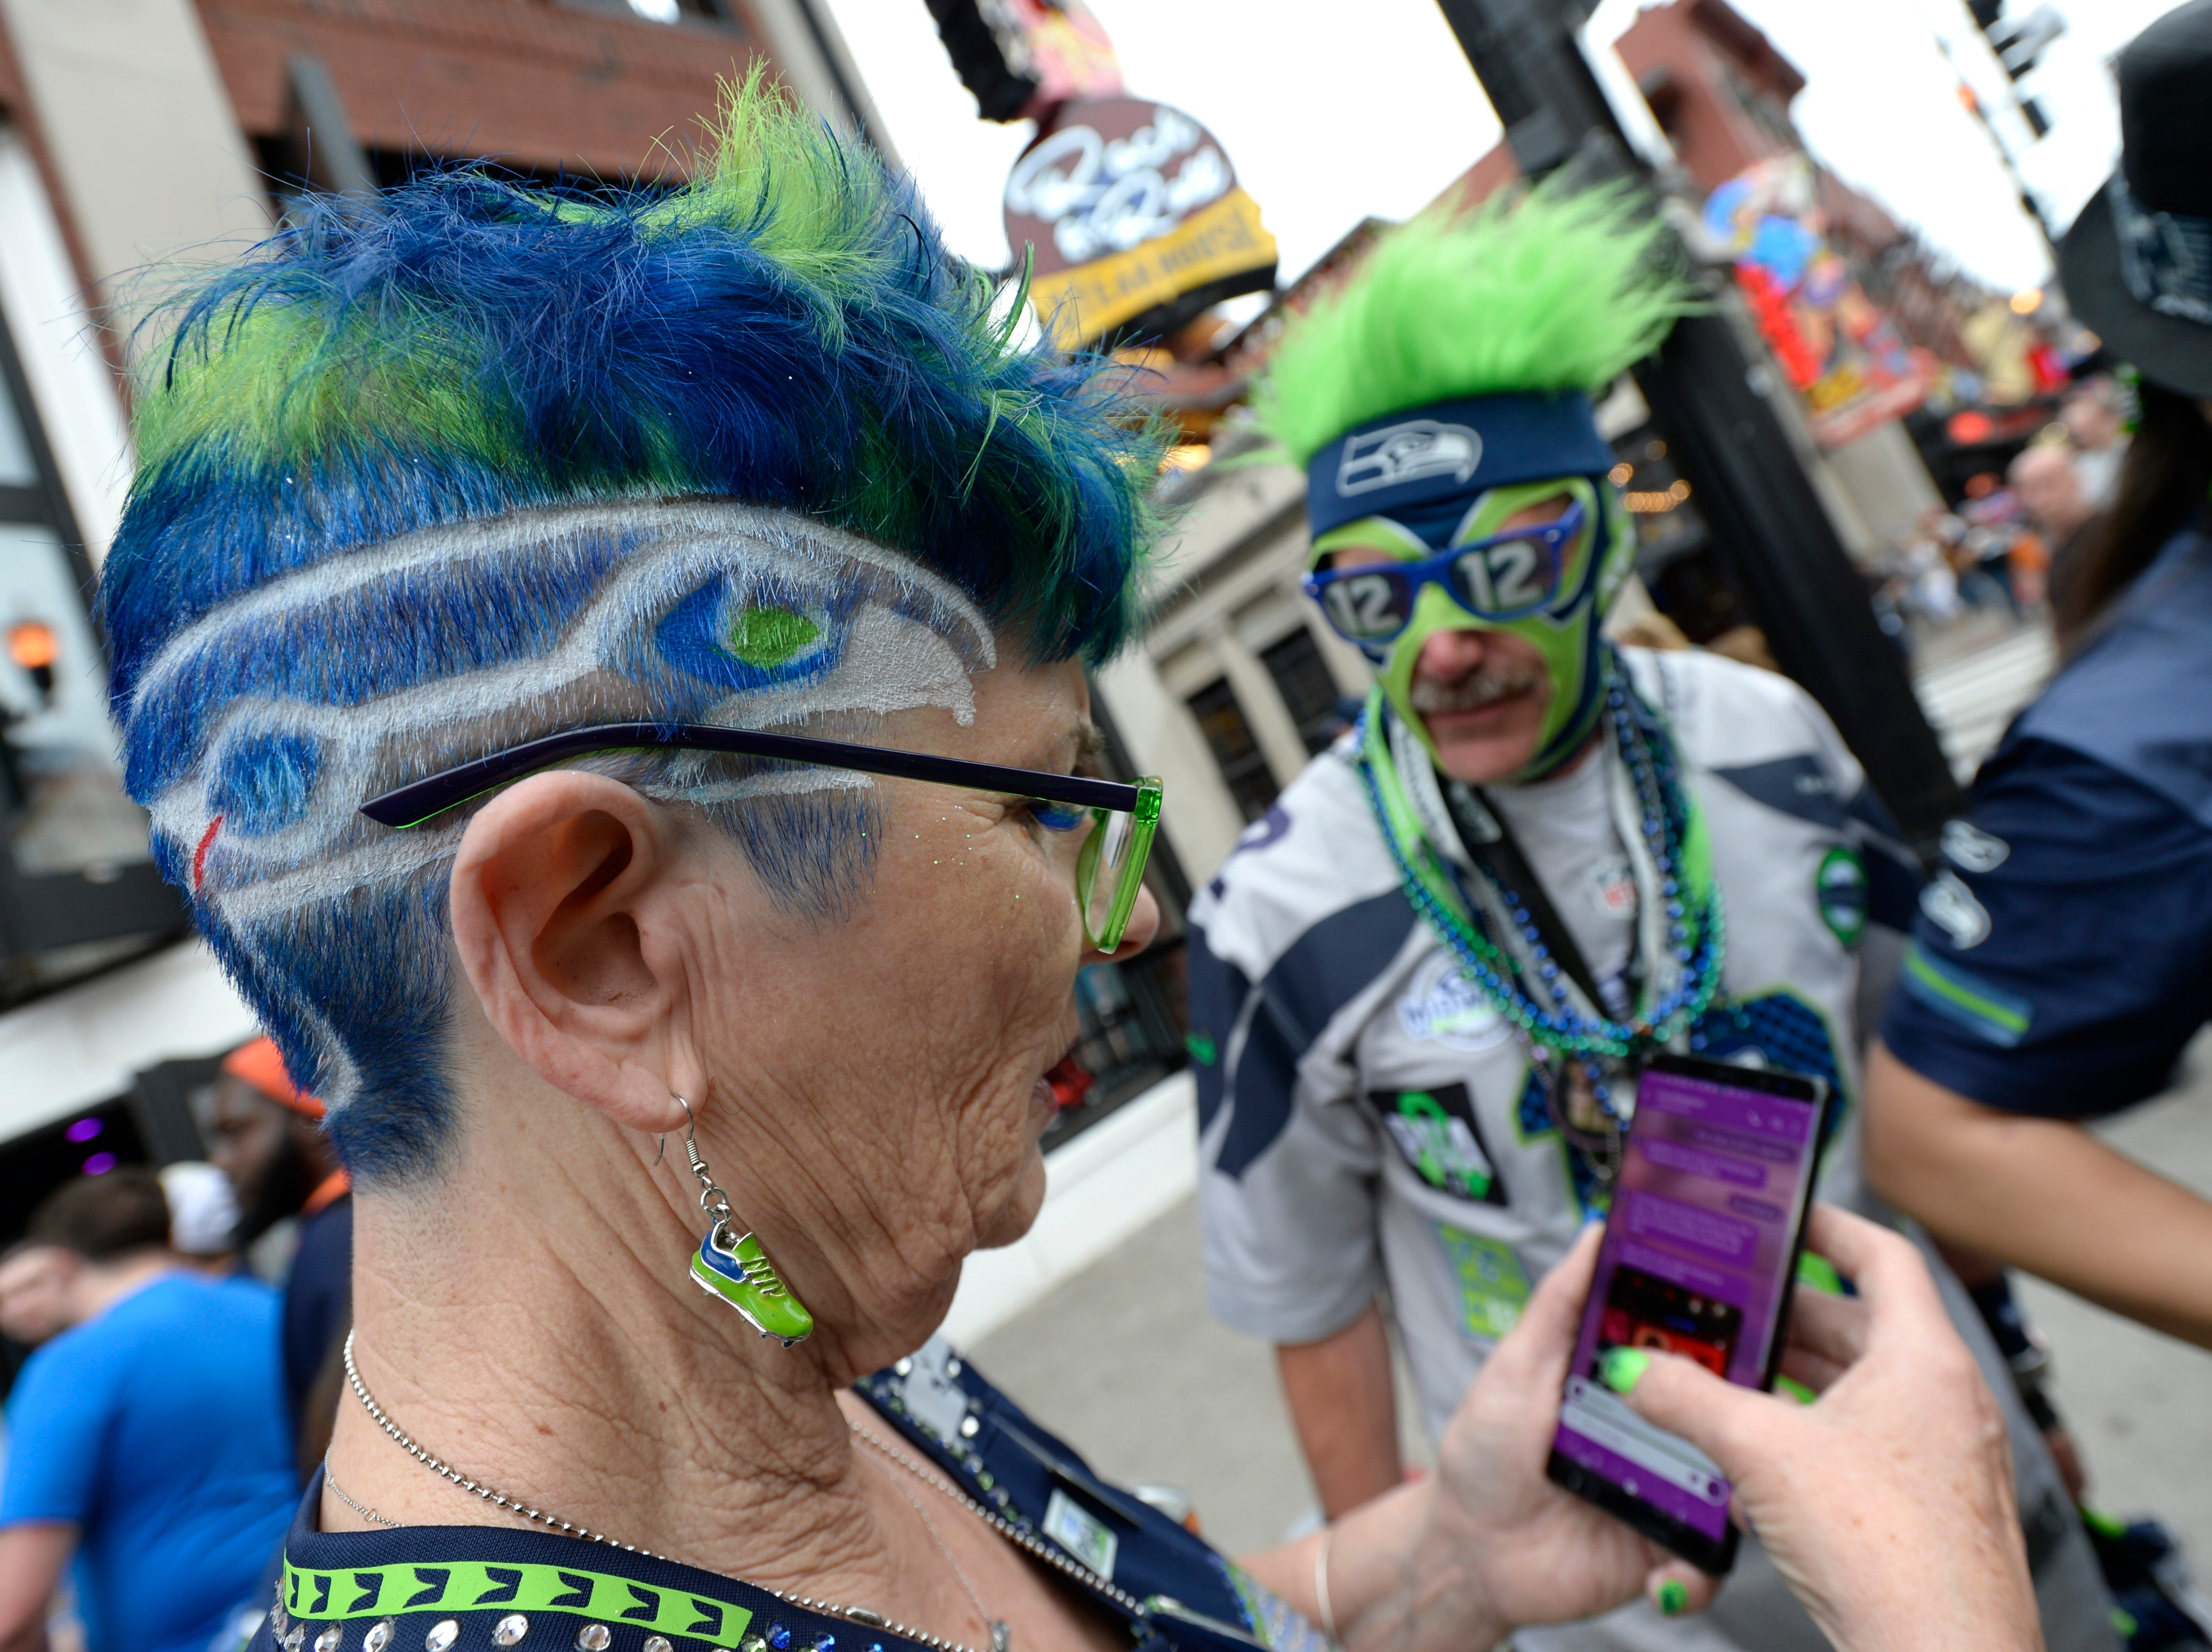 Seahawks fans gather before the start of the first round of the NFL Draft Thursday, April 25, 2019 in Nashville, Tenn.